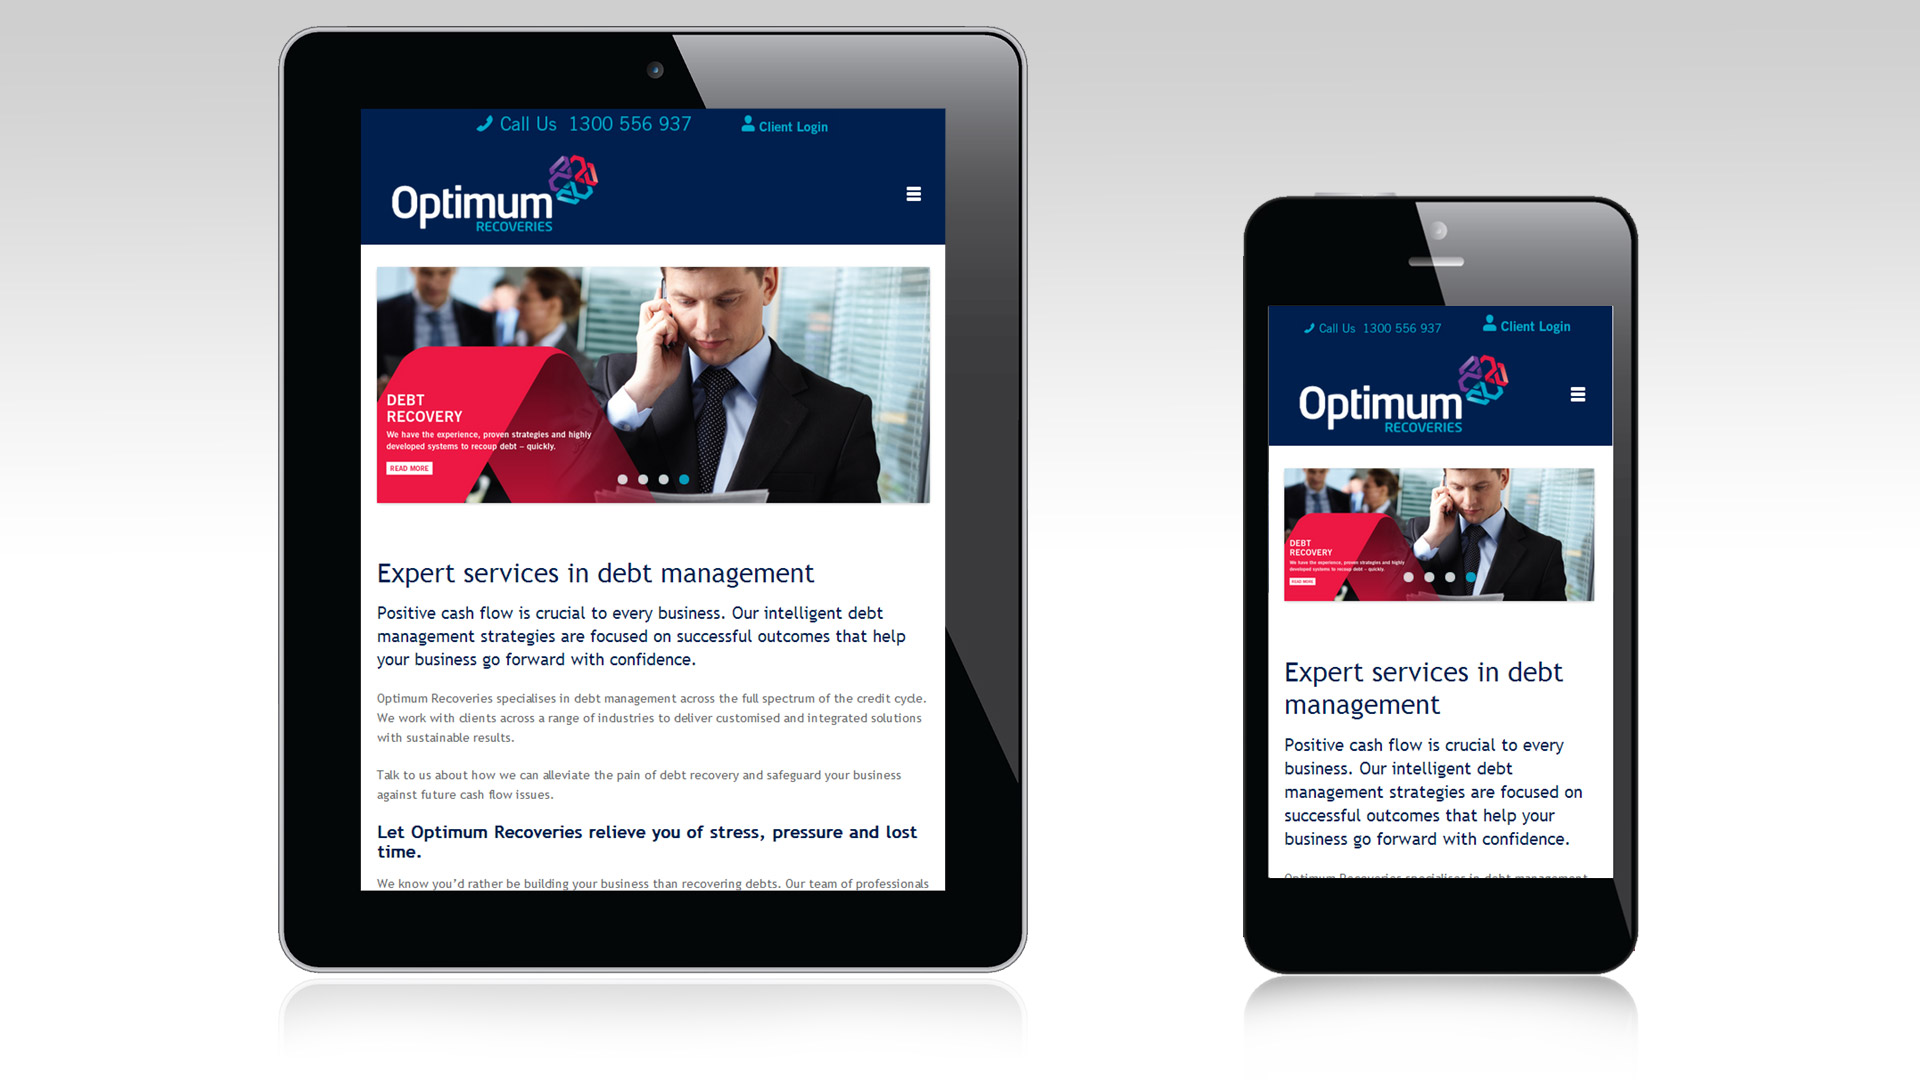 webdesign_optimum03